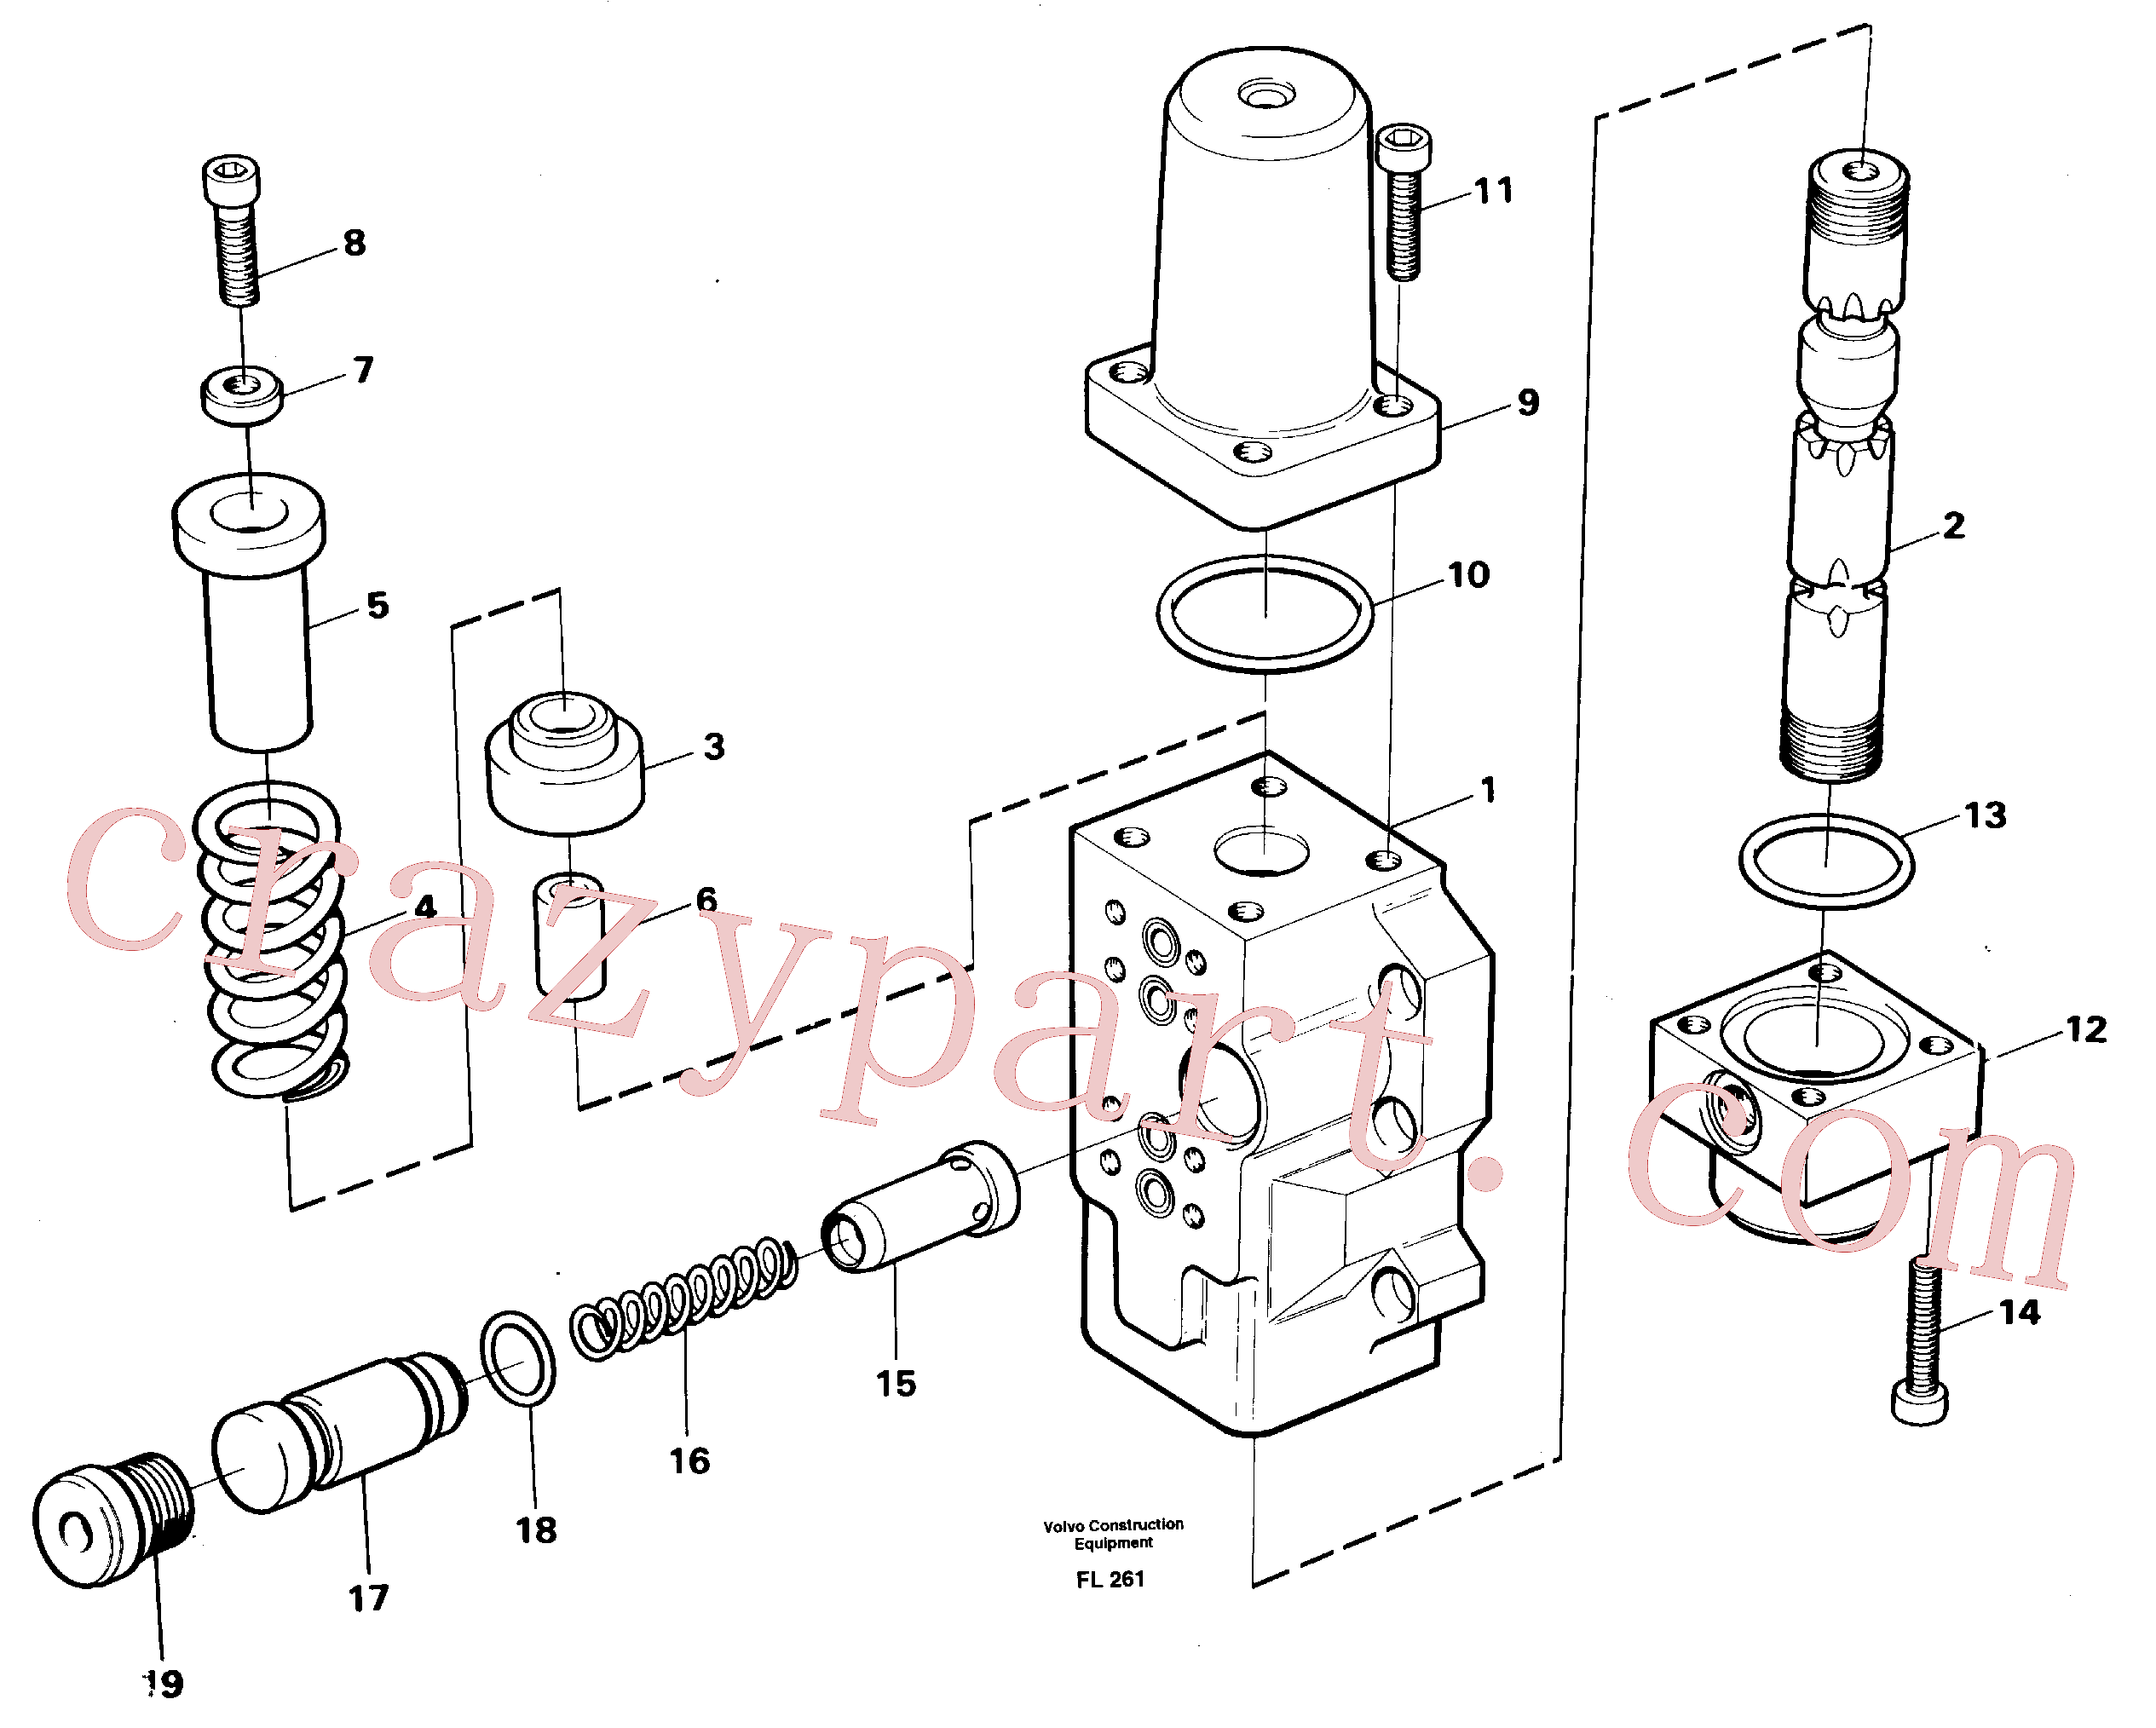 VOE14046451 for Volvo Four-way valve, boom primary(FL261 assembly)